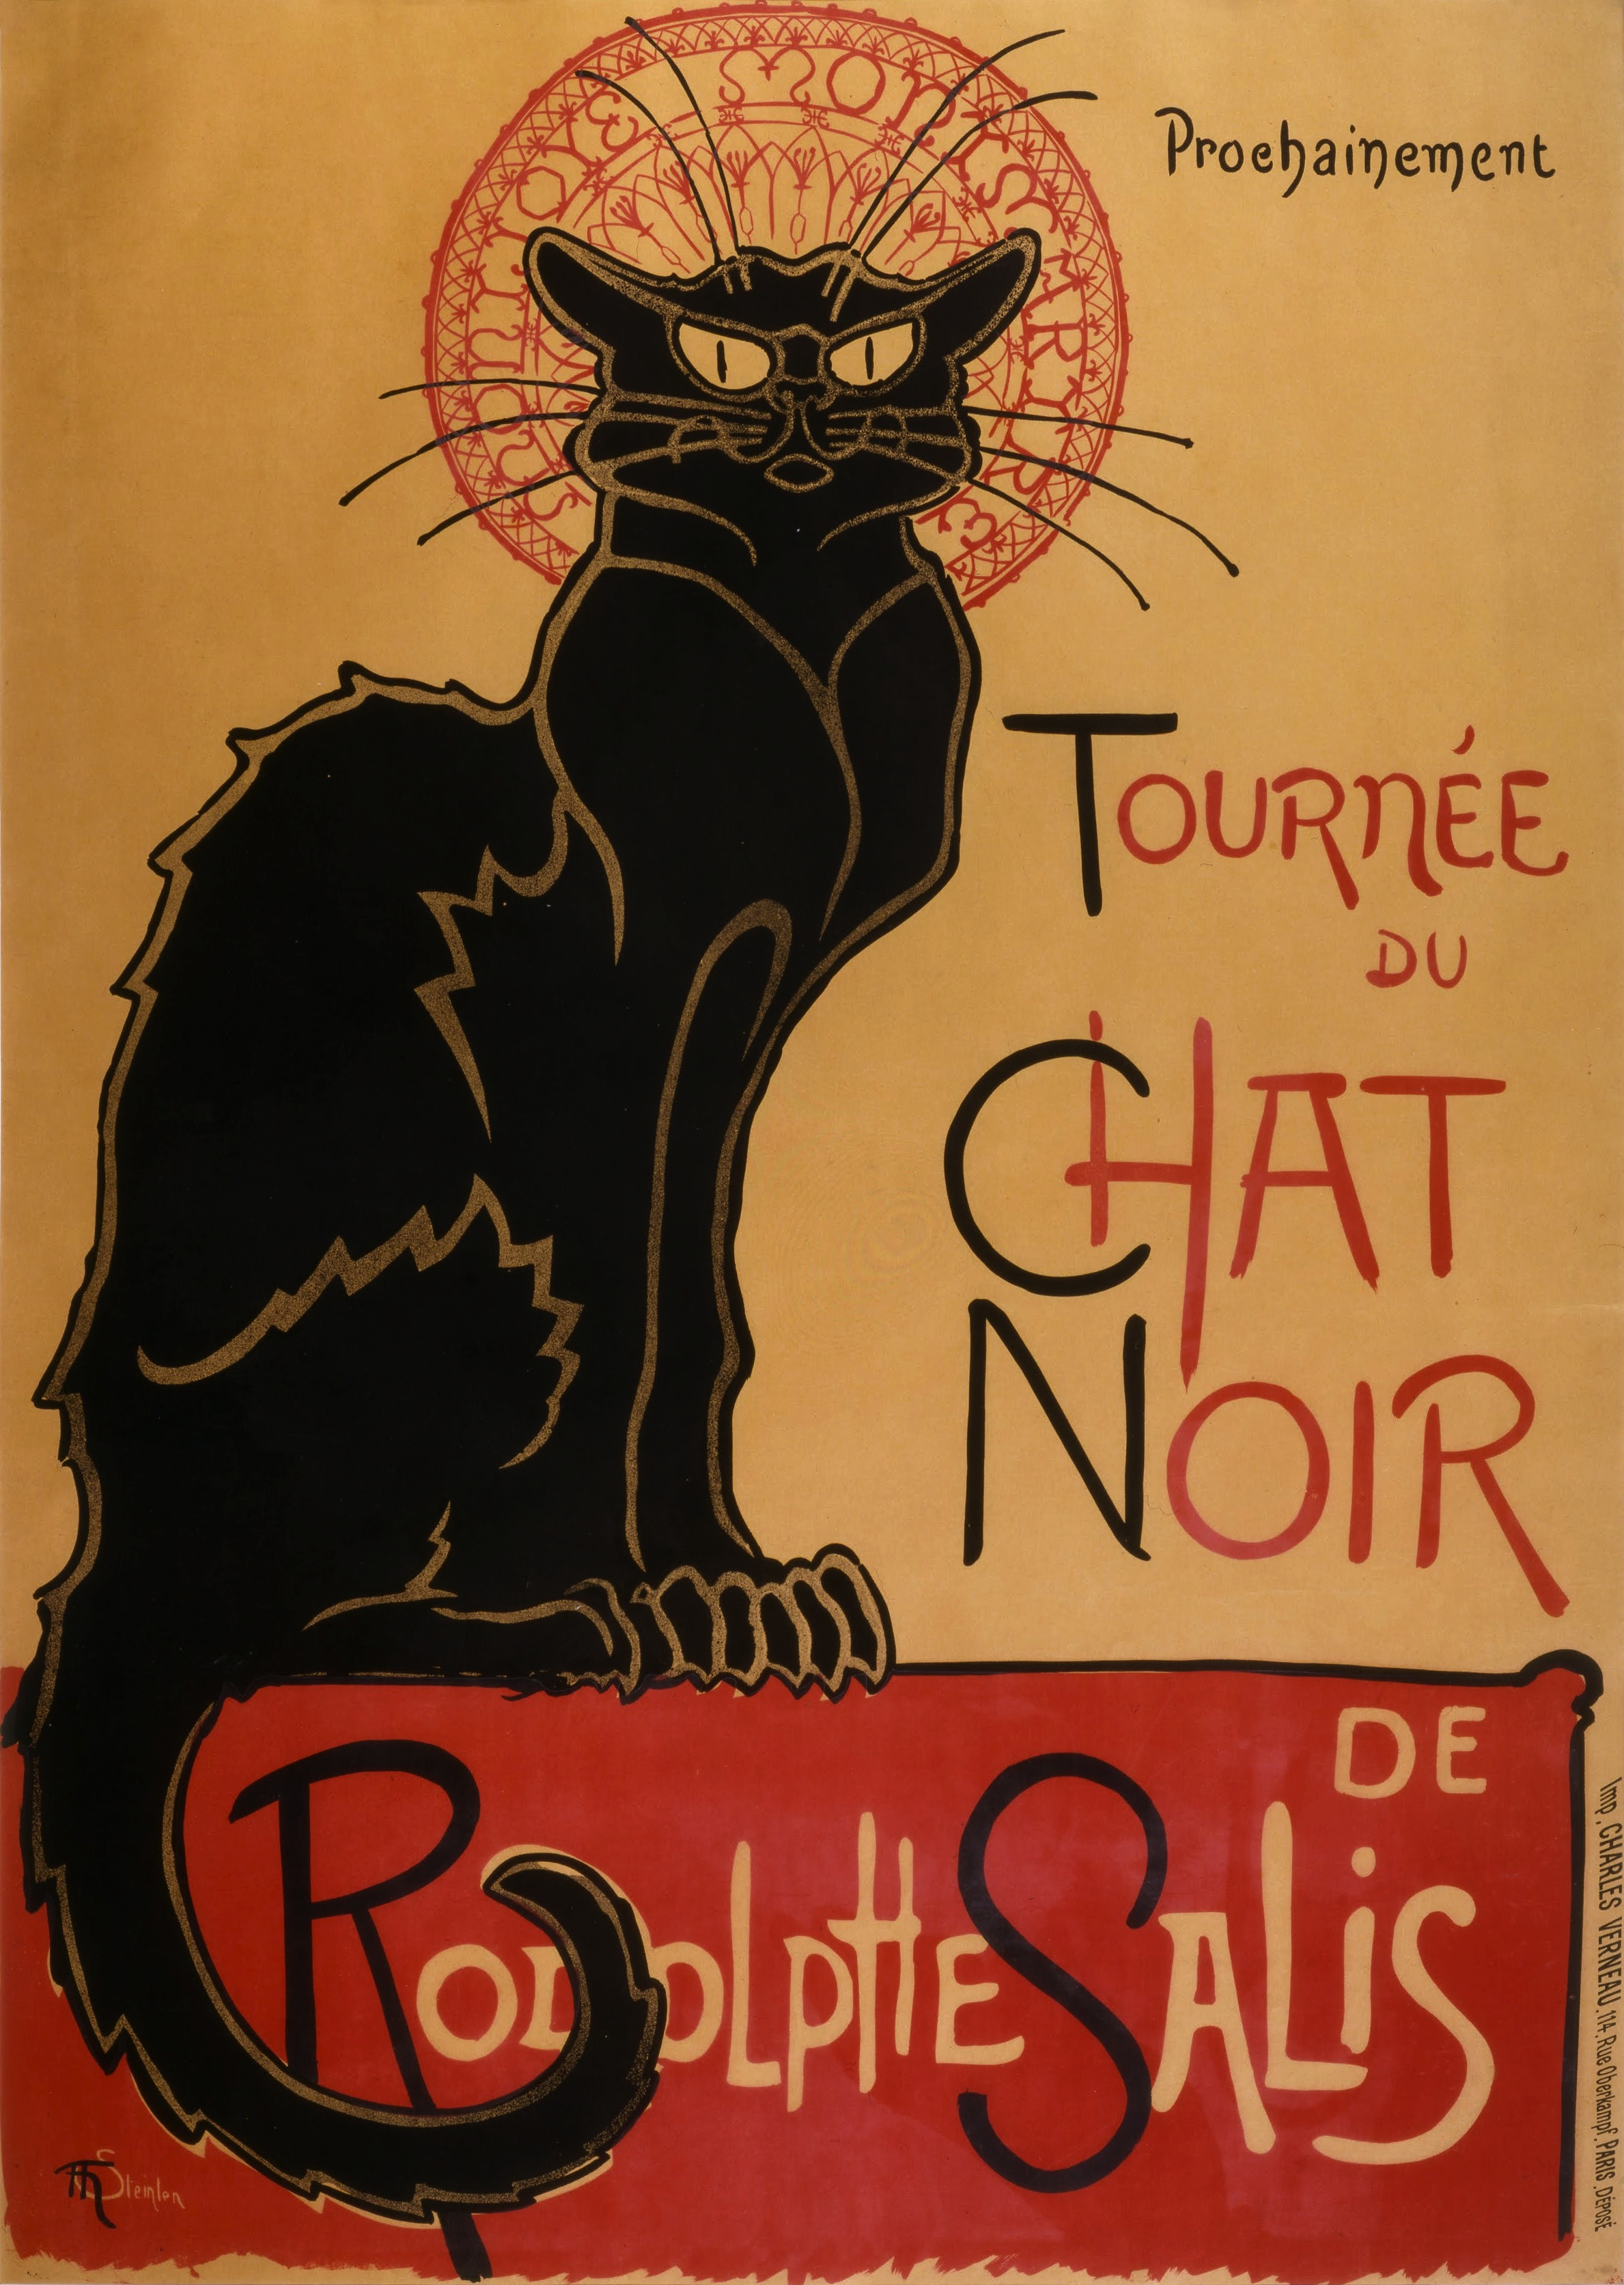 Théophile-Alexandre_Steinlen_-_Tournée_du_Chat_Noir_de_Rodolphe_Salis_(Tour_of_Rodolphe_Salis'_Chat_Noir)_-_Google_Art_Project (from Mousebook)